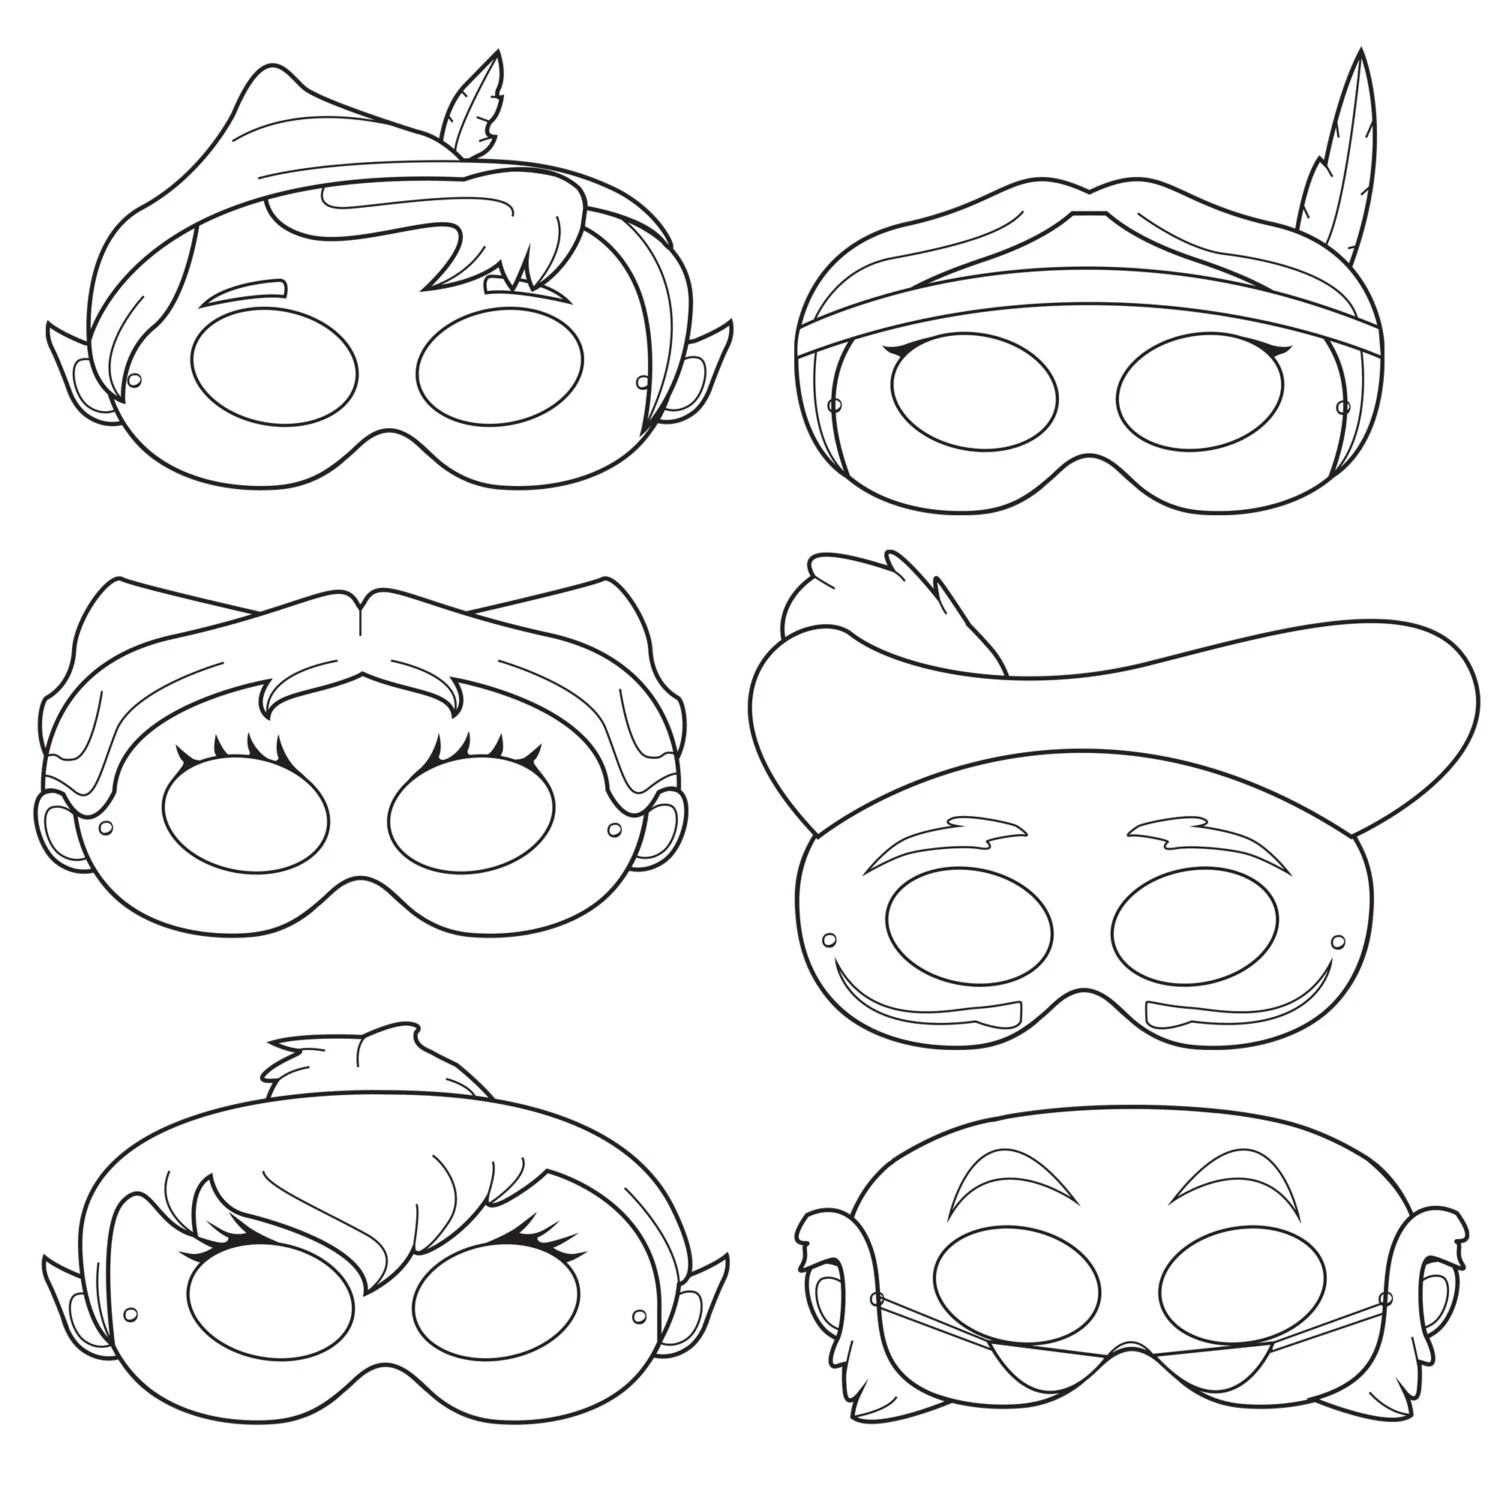 Peter Pan Printable Coloring Mask peter pan captain hook